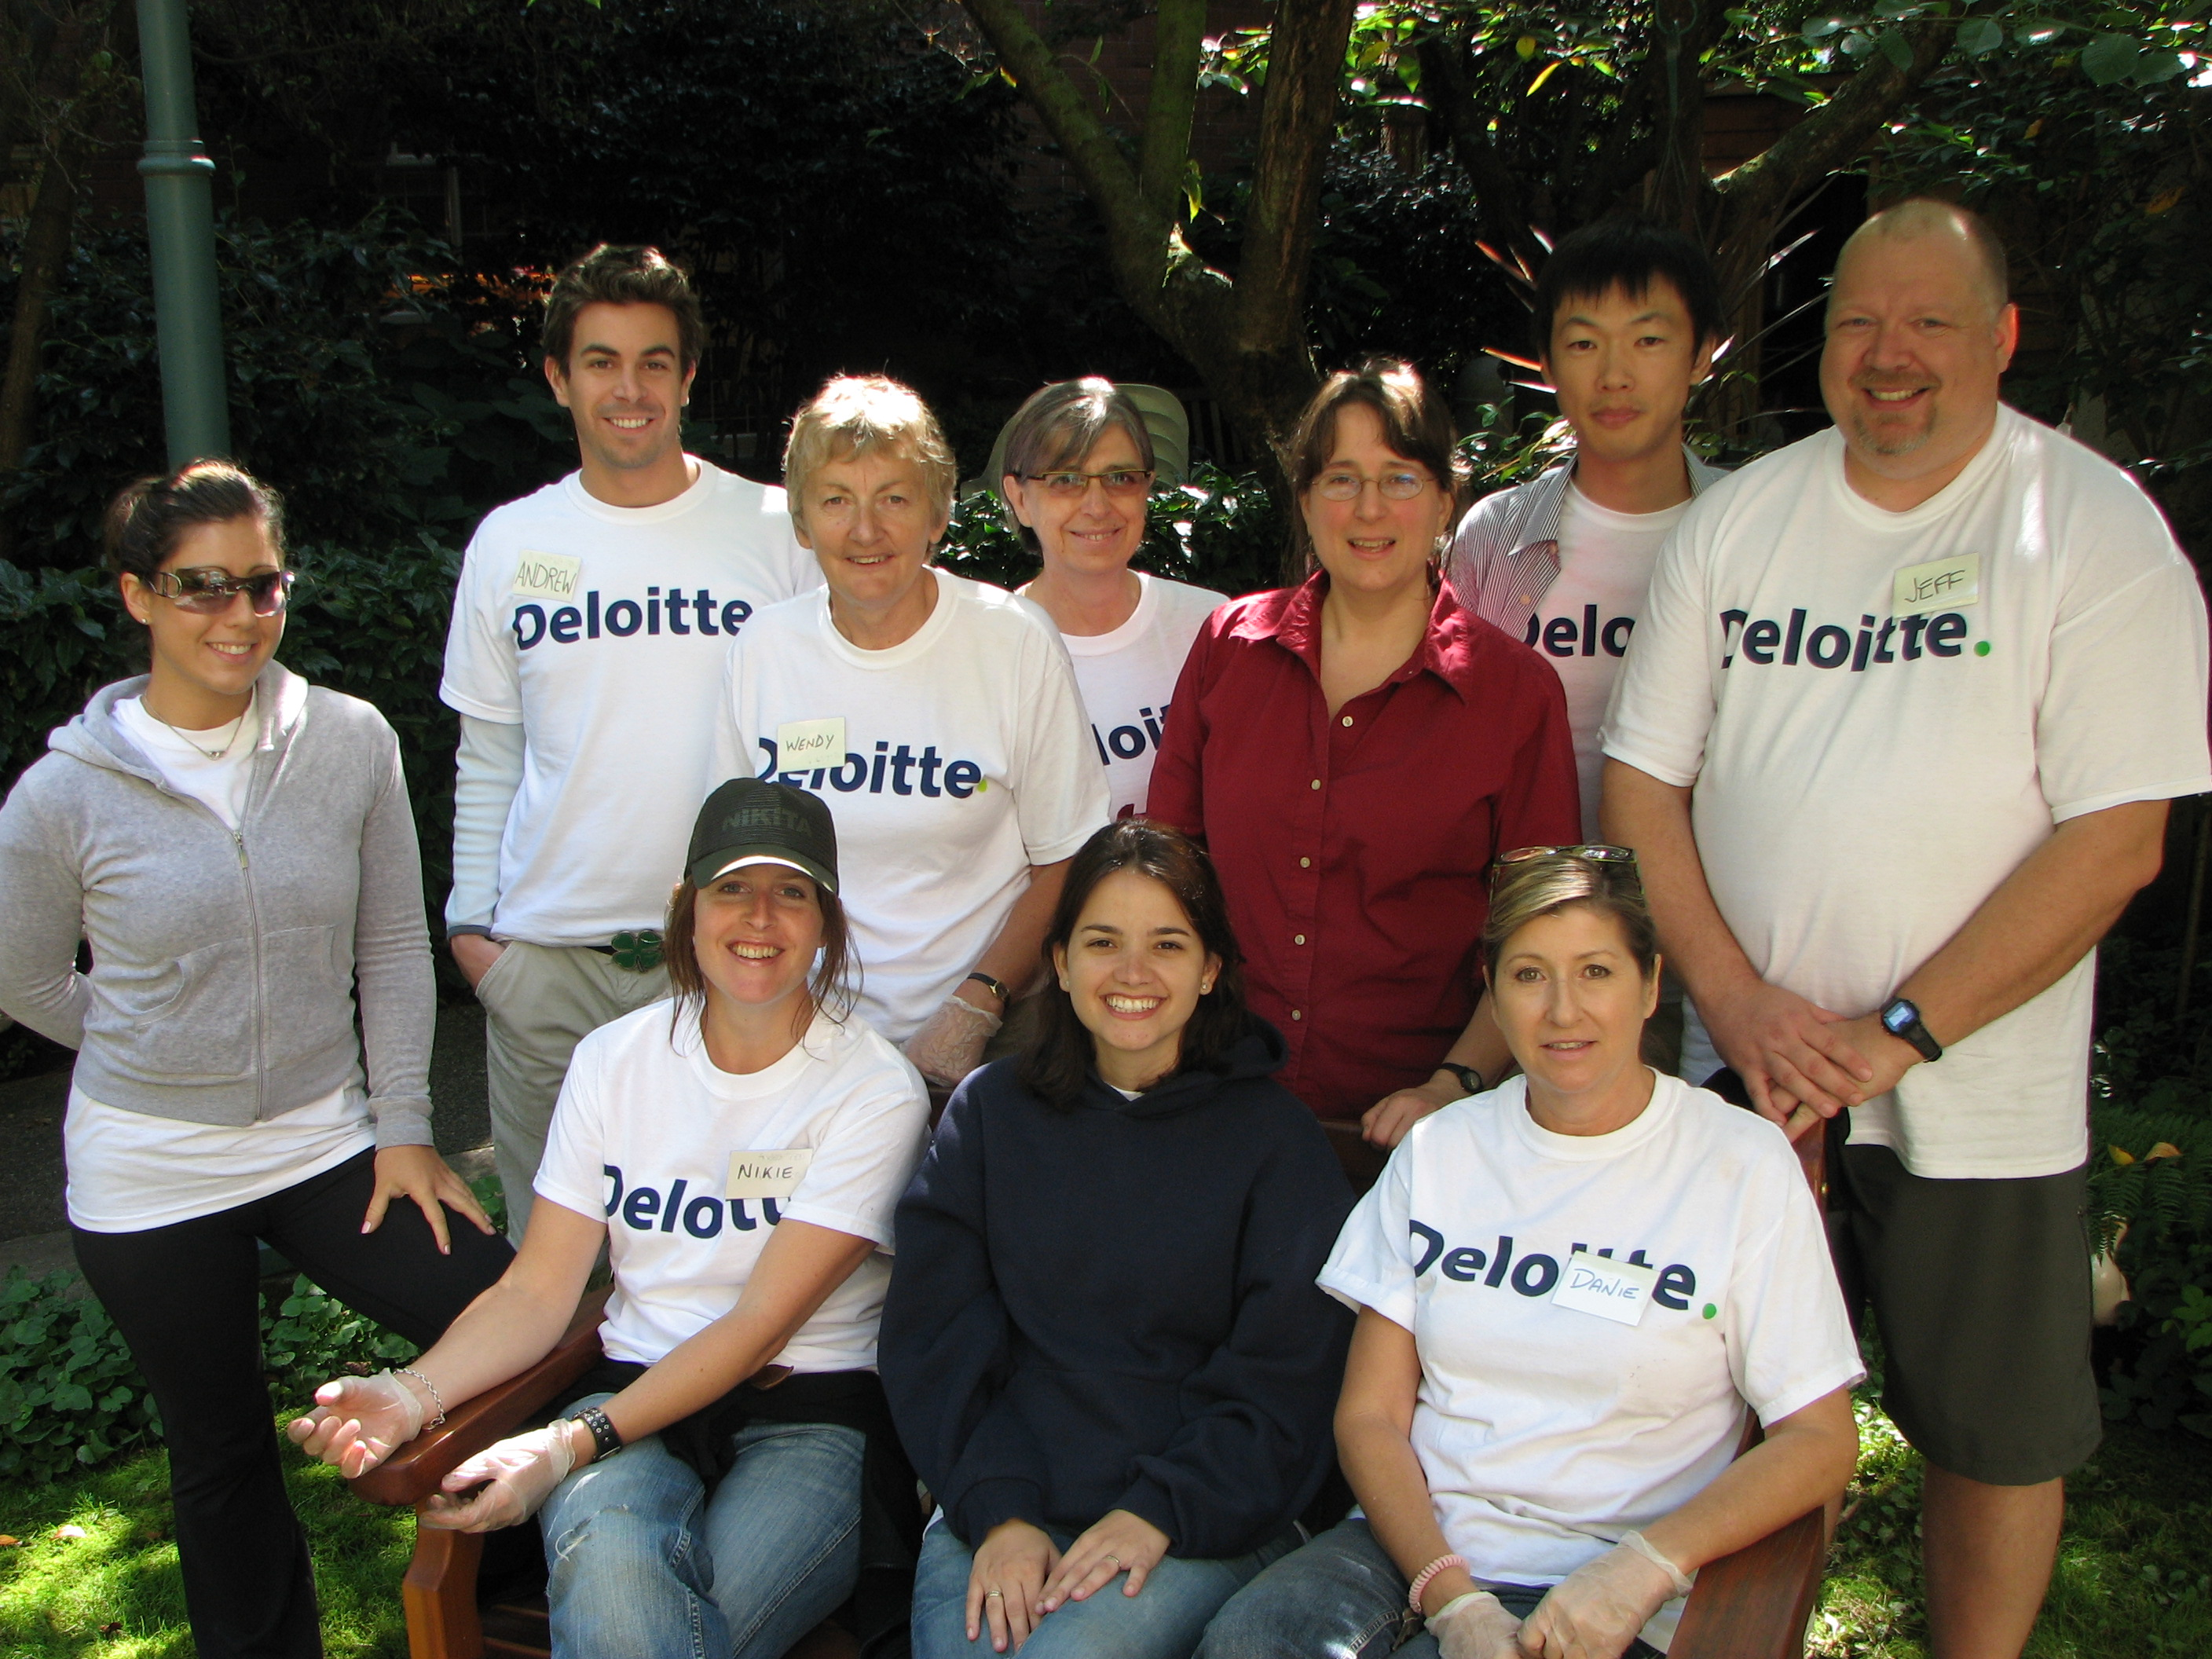 Our thanks to Deloitte and Touche